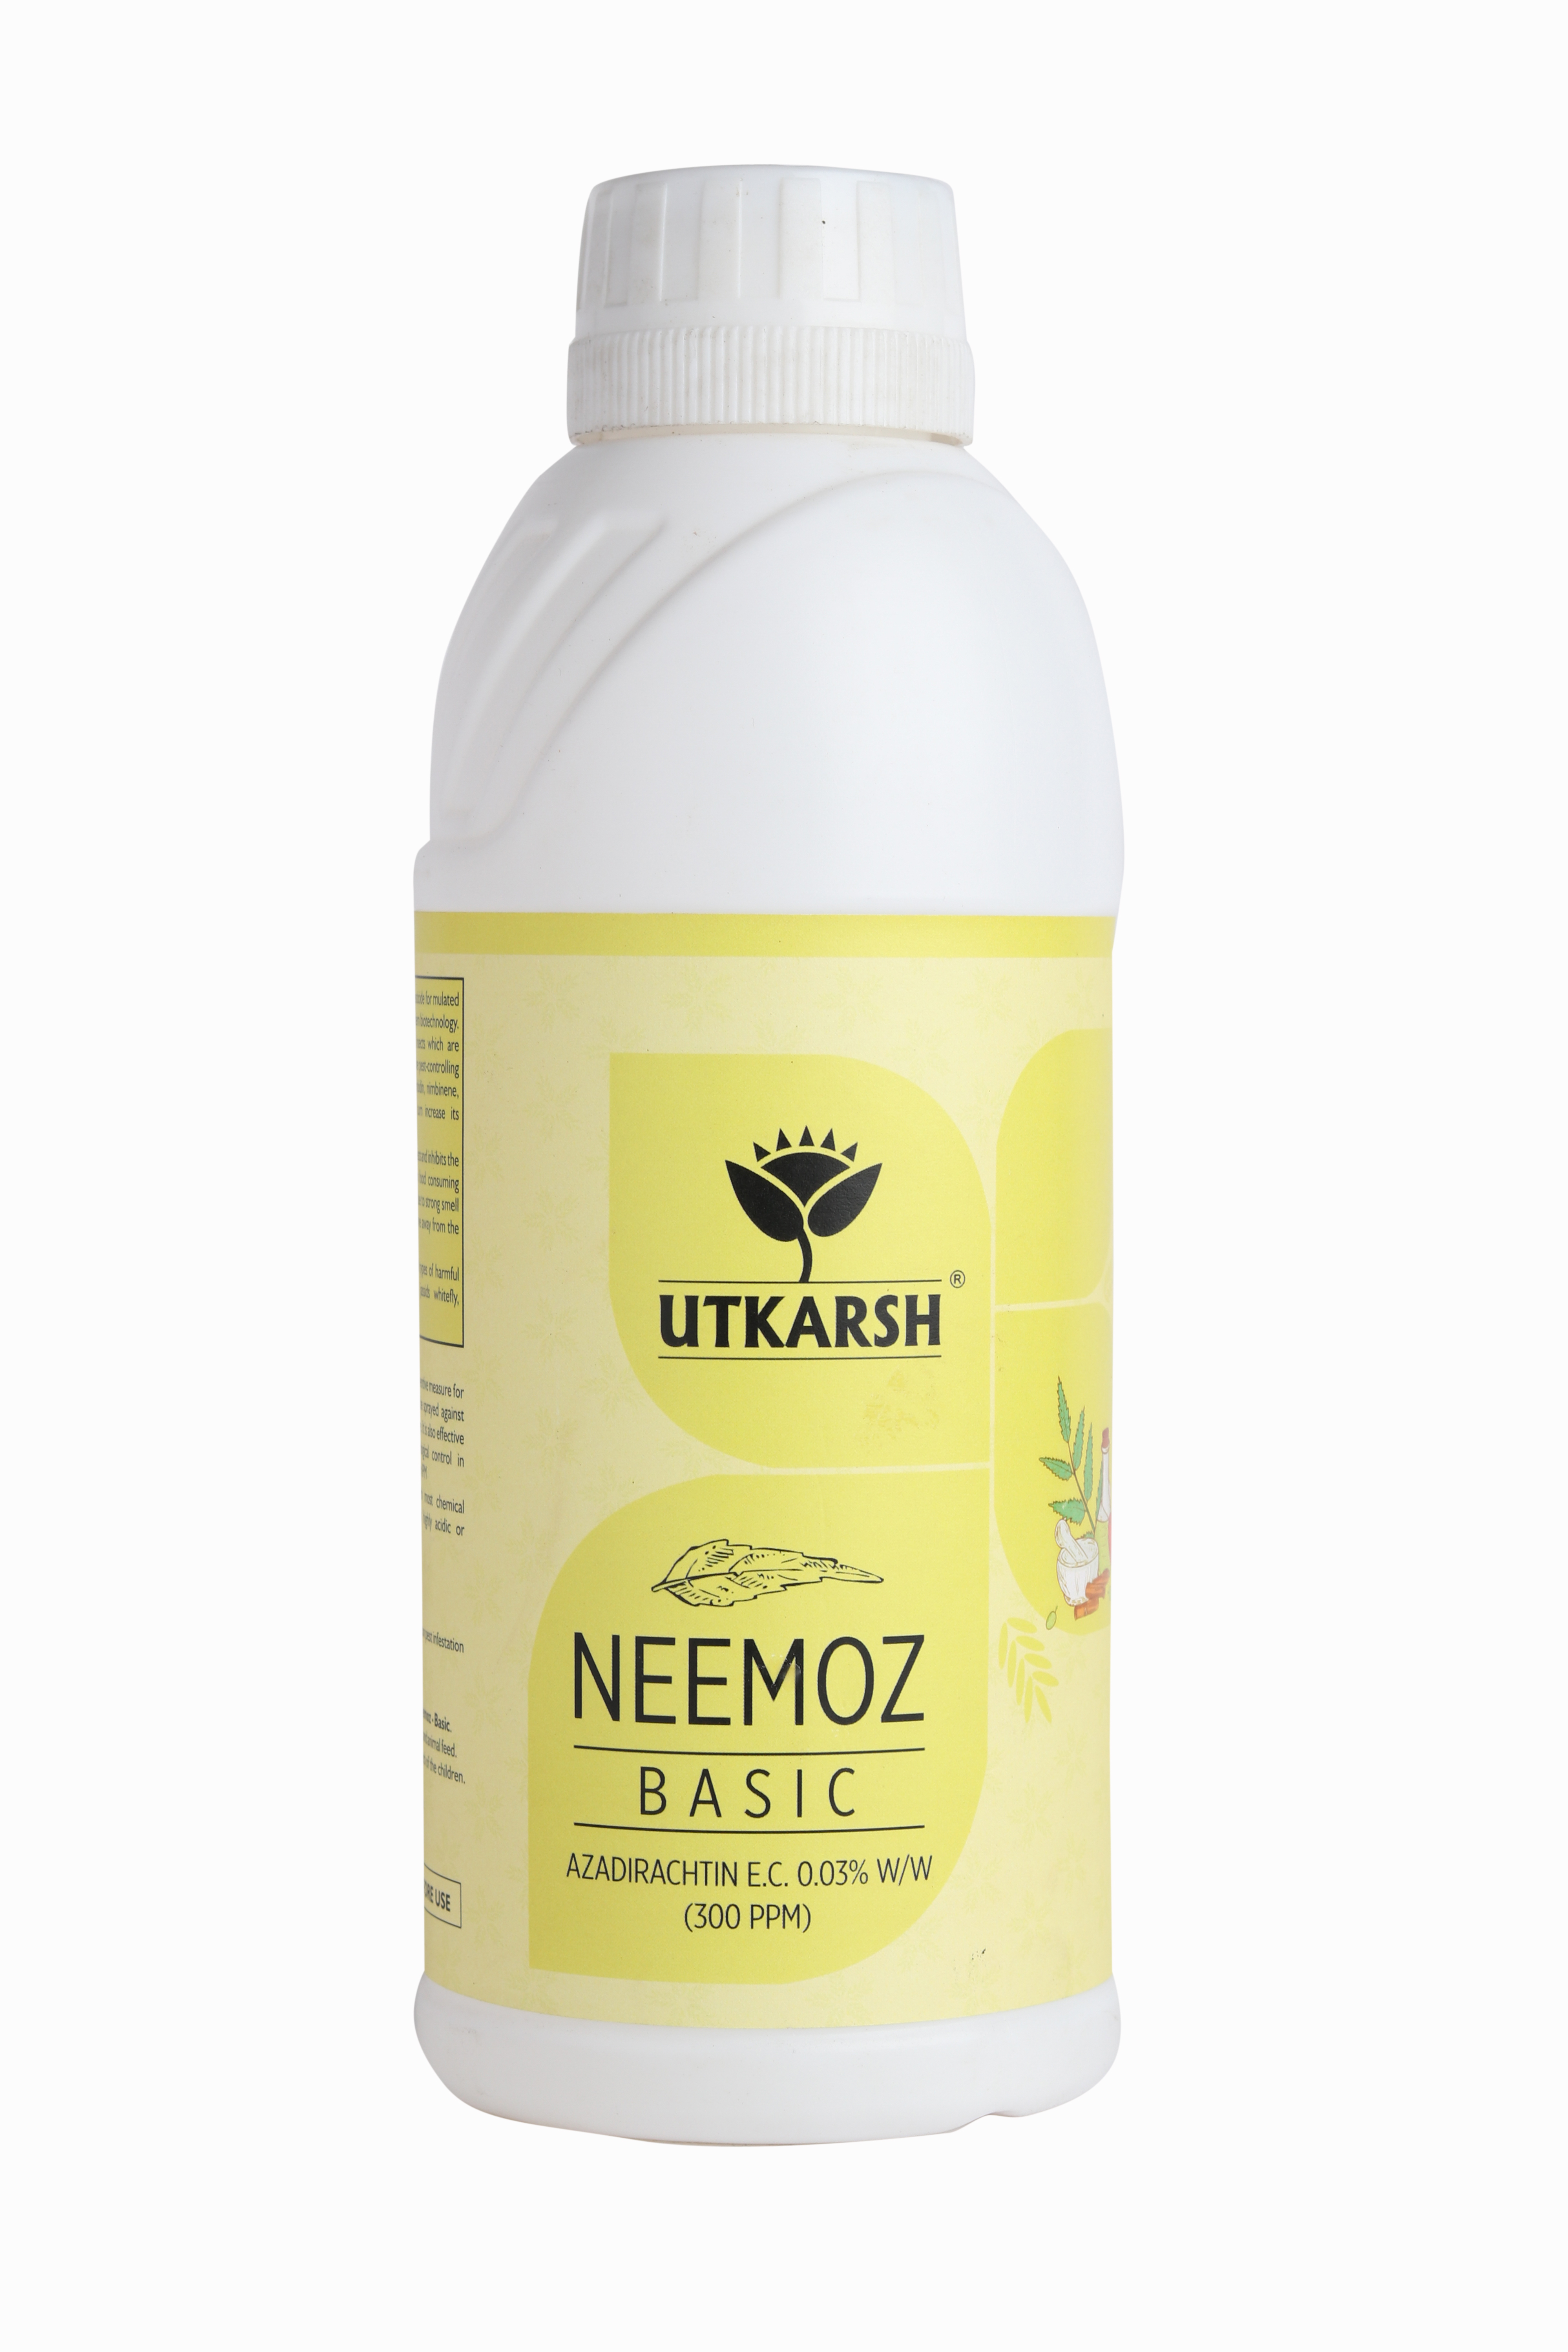 Natural Neem Oil With 300 ppm Azadirachtin